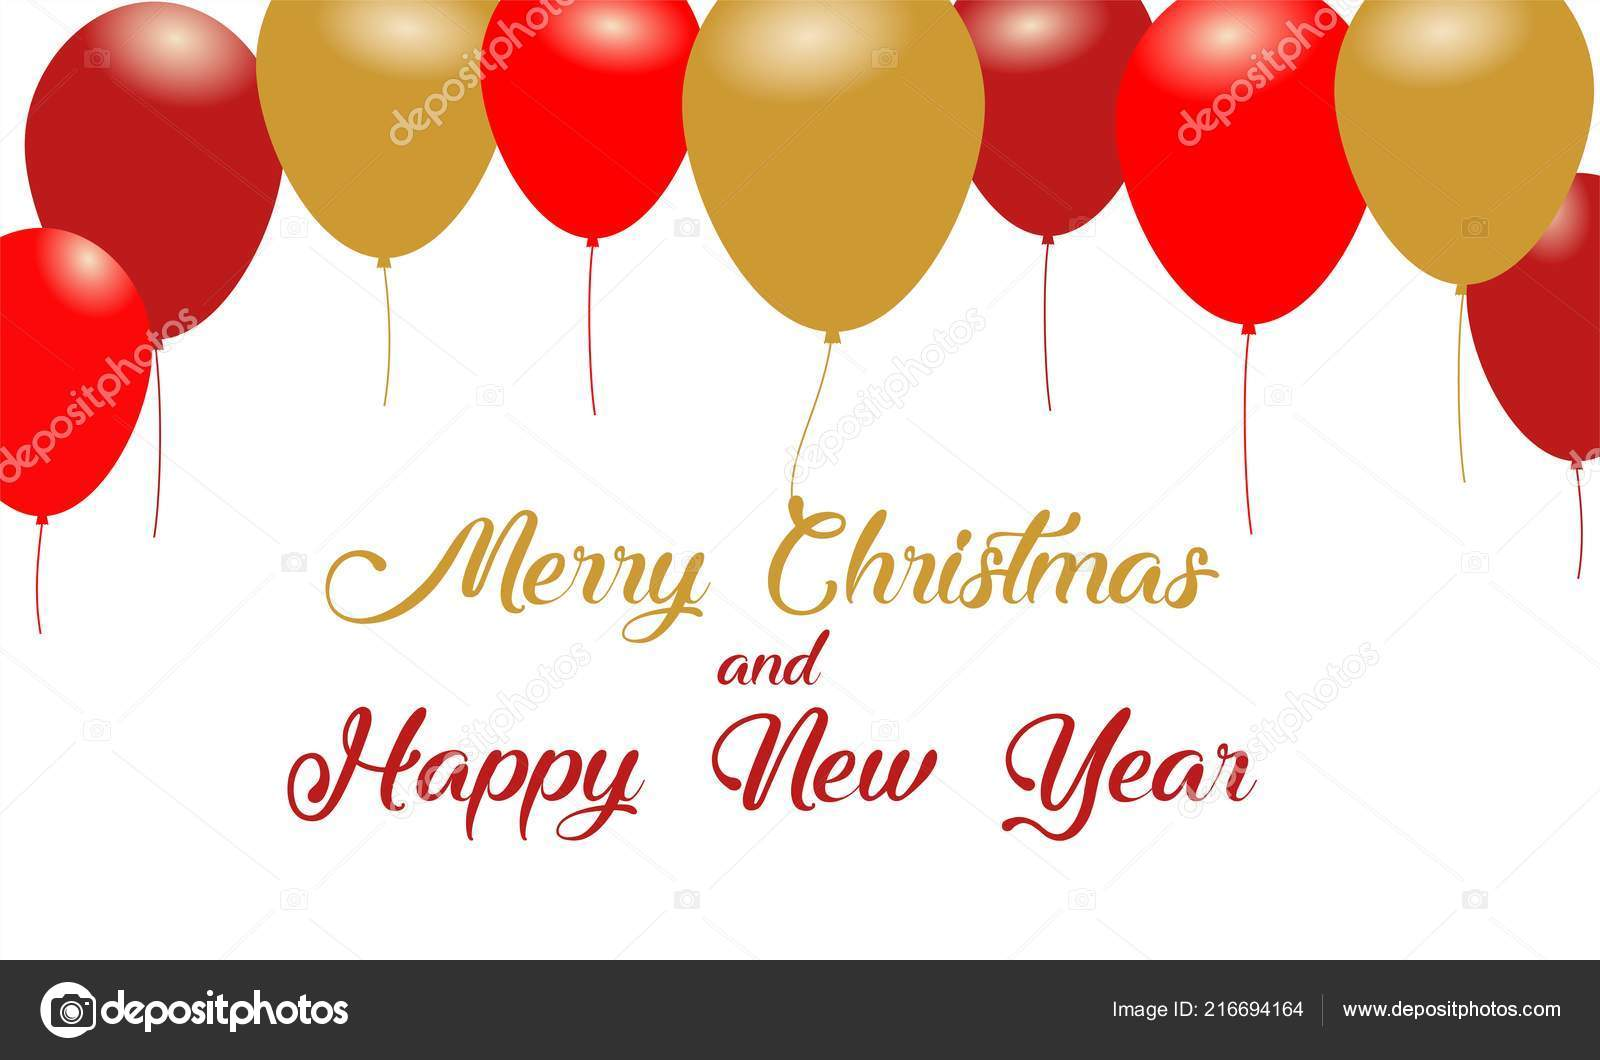 merry christmas happy new year message design background balloons stock vector